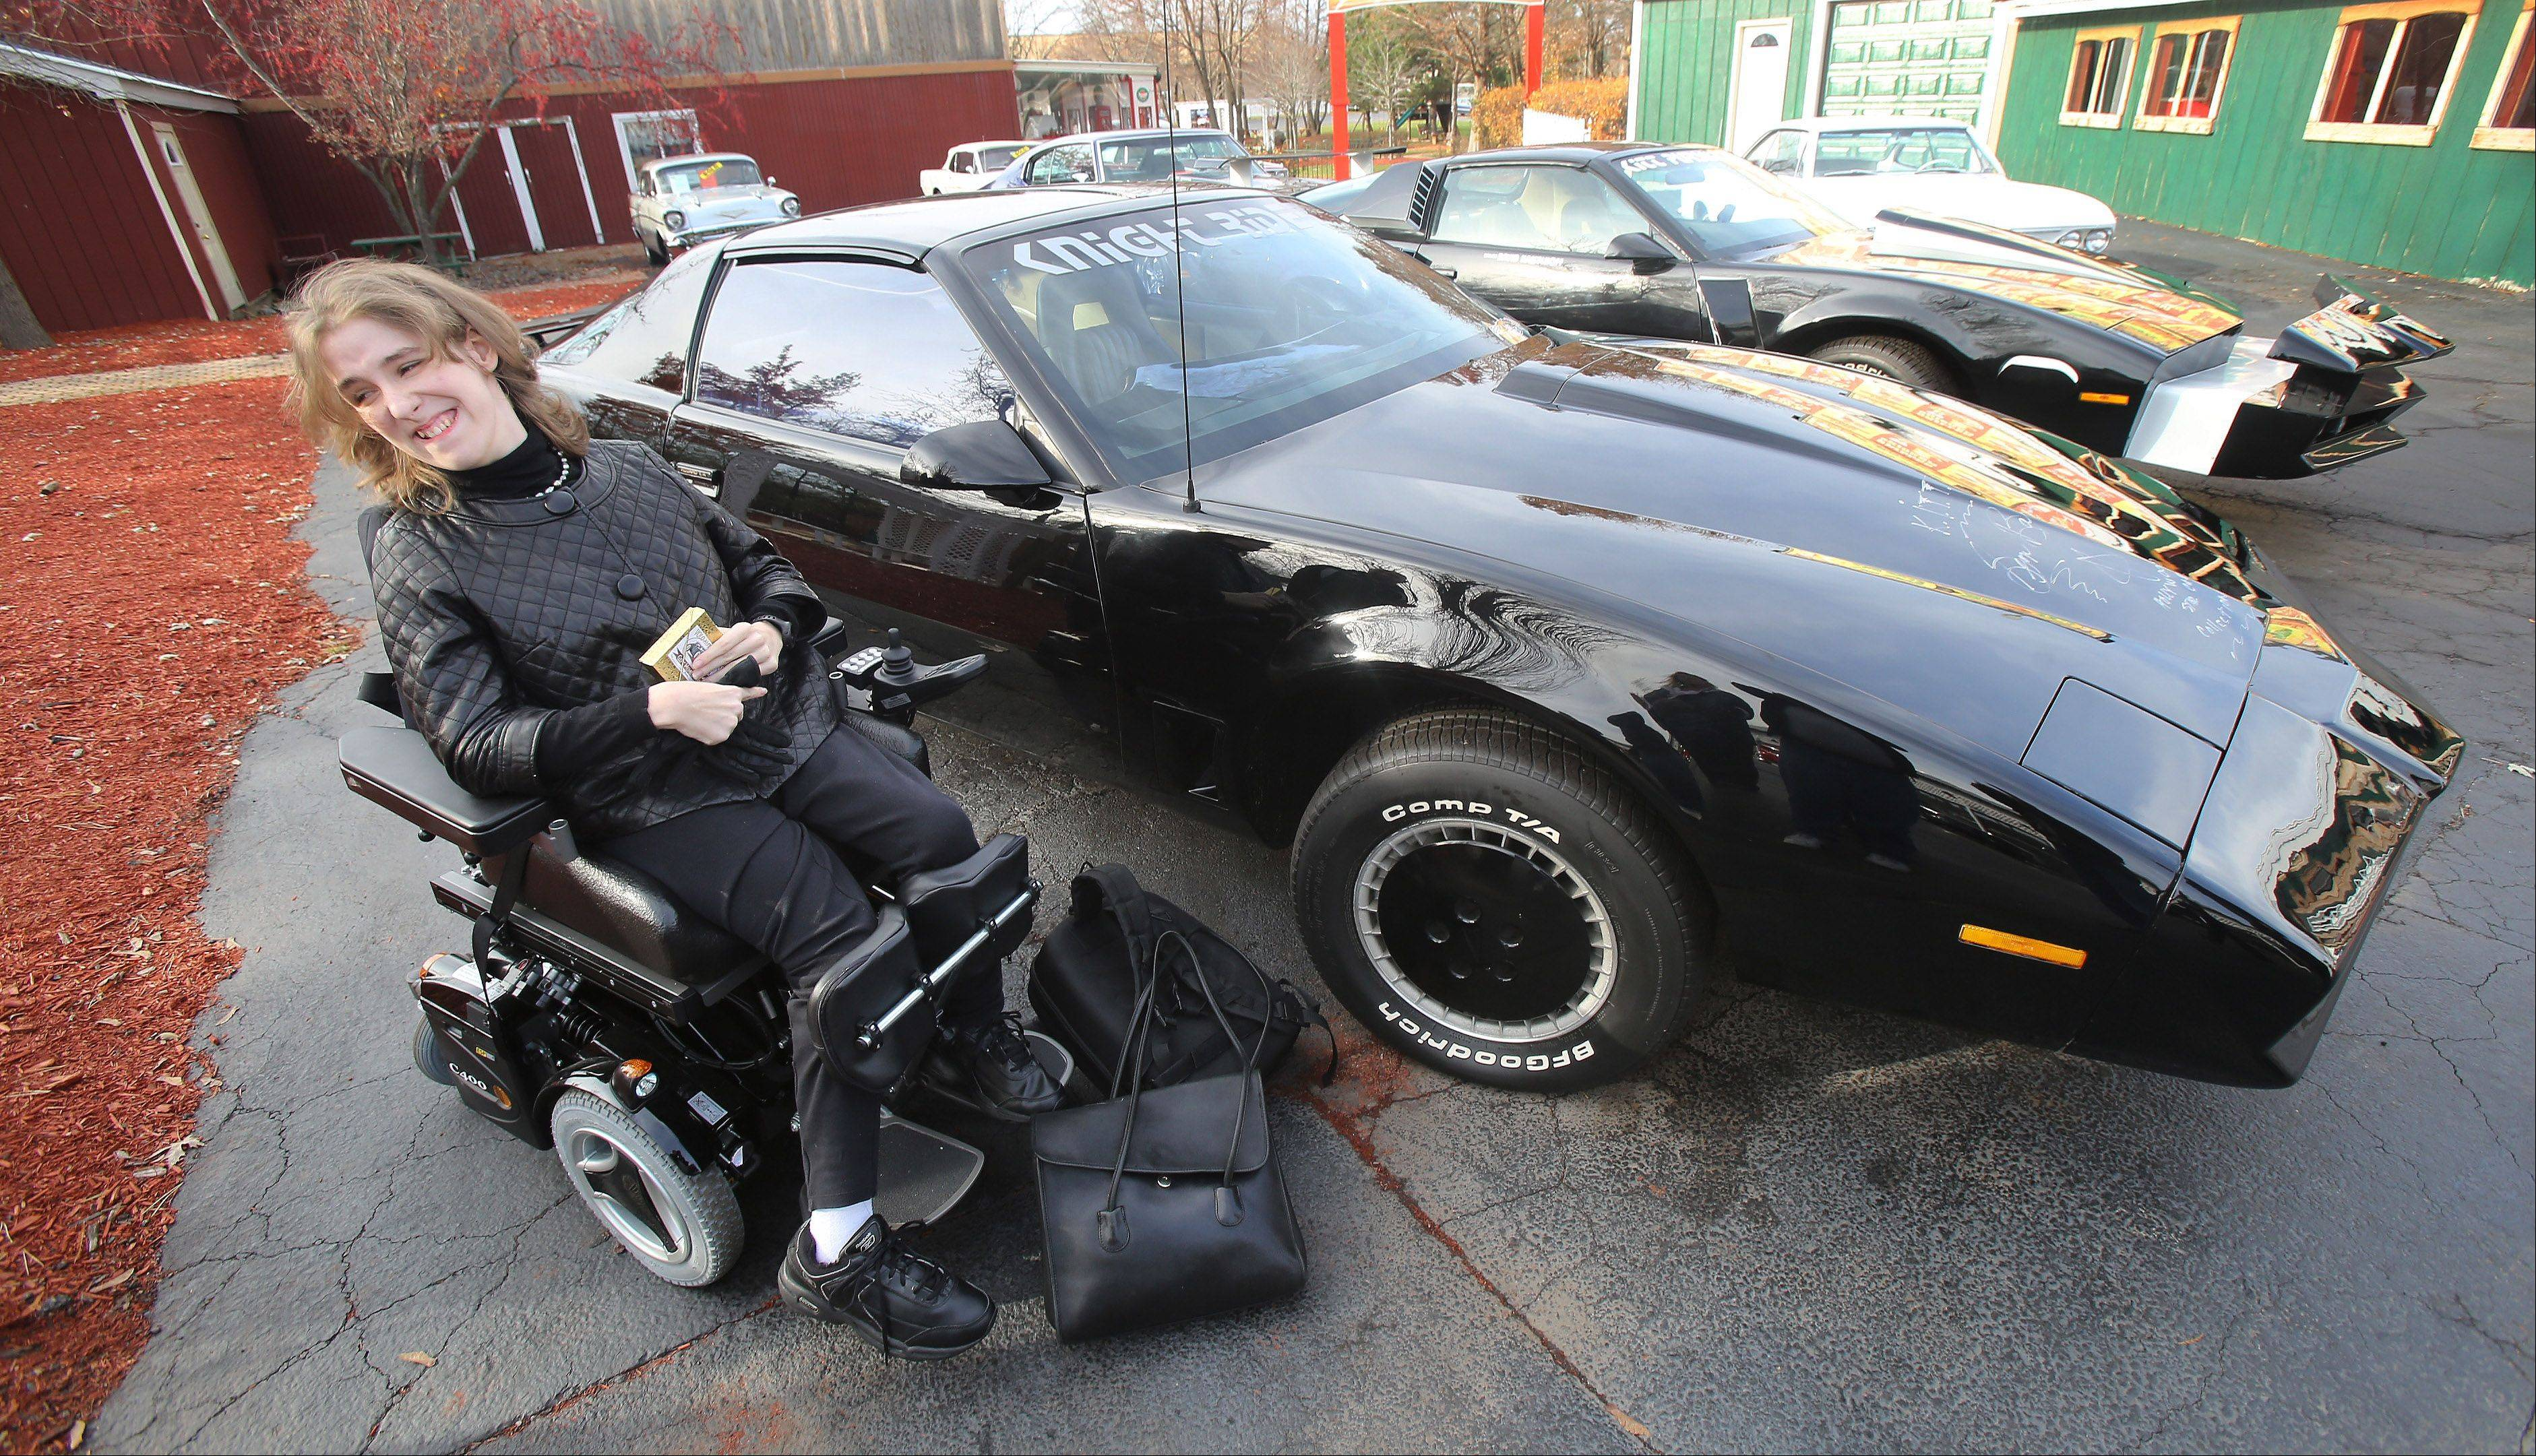 �Knight Rider� fan Dawn Kennison of Wisconsin is delighted to see and ride in KITT, the car from the 1980s television show, at the Volo Auto Museum on Wednesday.